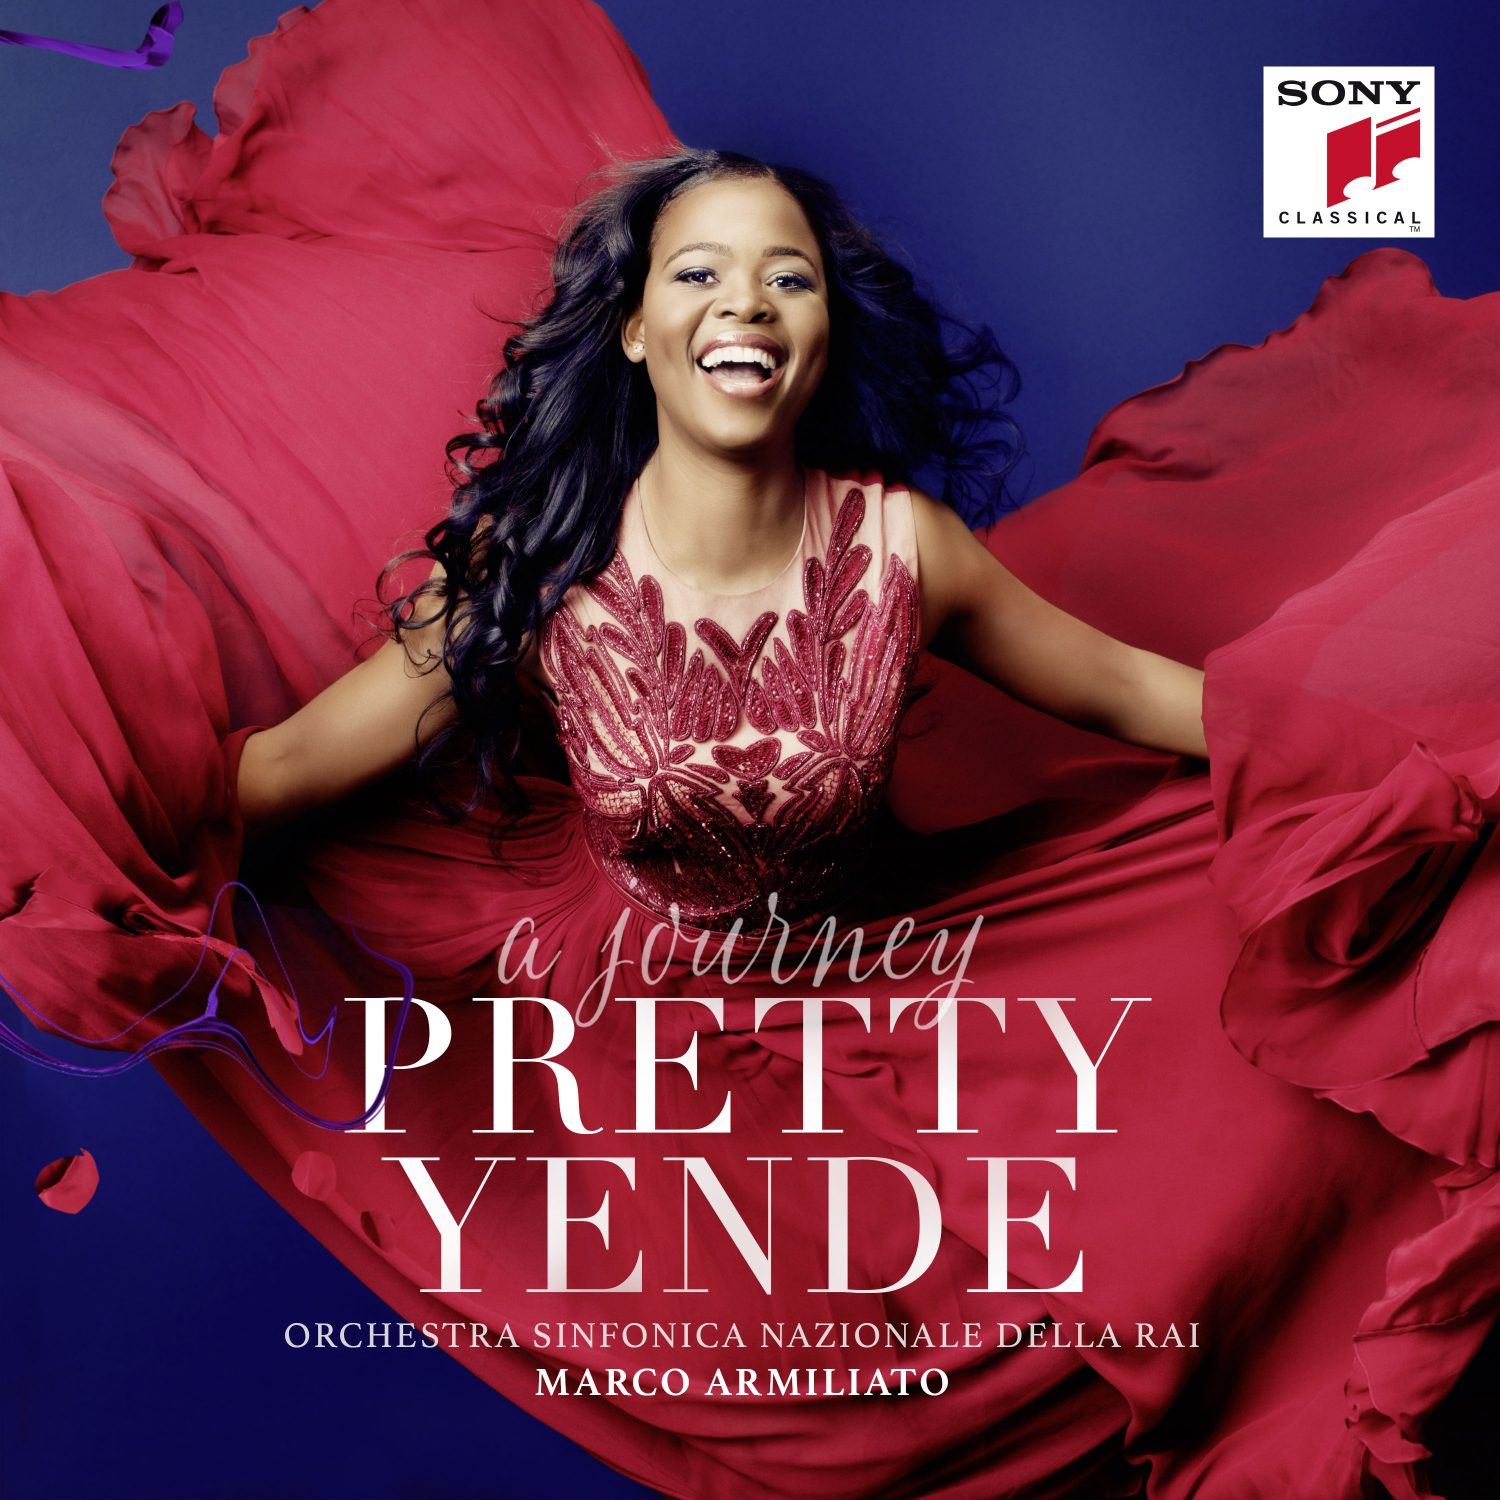 Pretty Yende, A Journey, Sony Classical (parution le 16 septembre 2016)